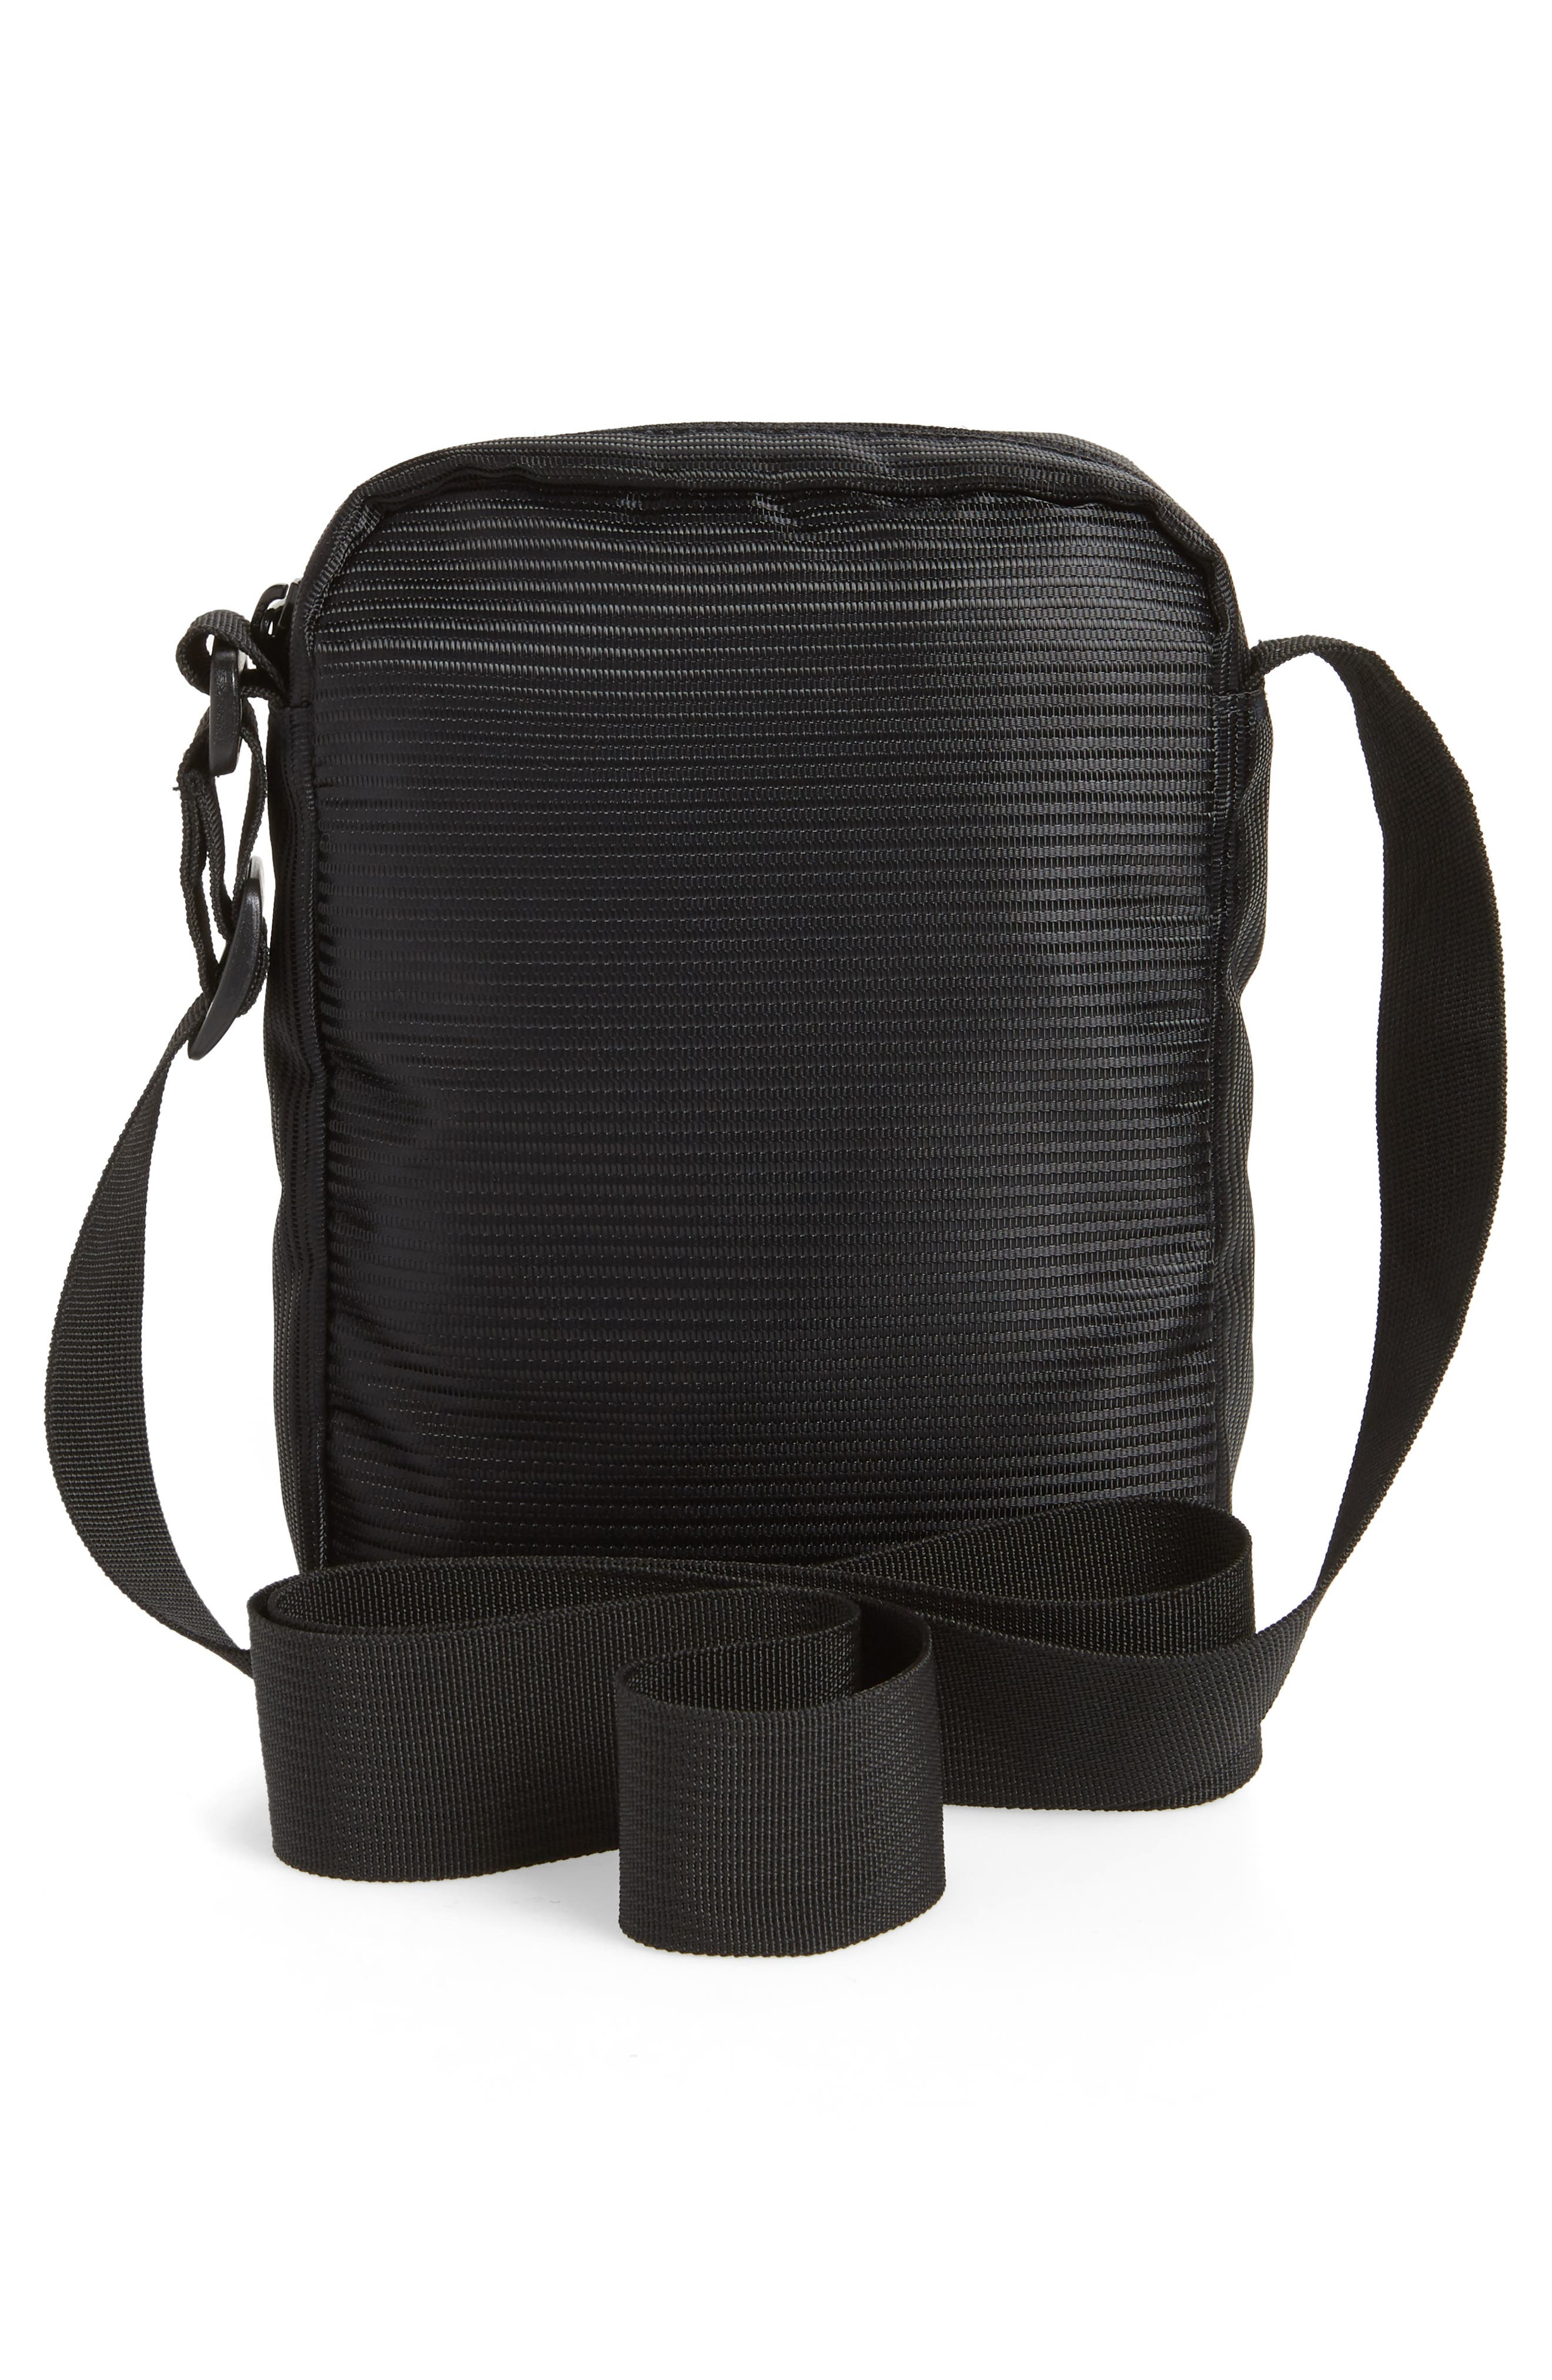 Crossbody FX Bag,                             Alternate thumbnail 3, color,                             BLACK LINE CORD